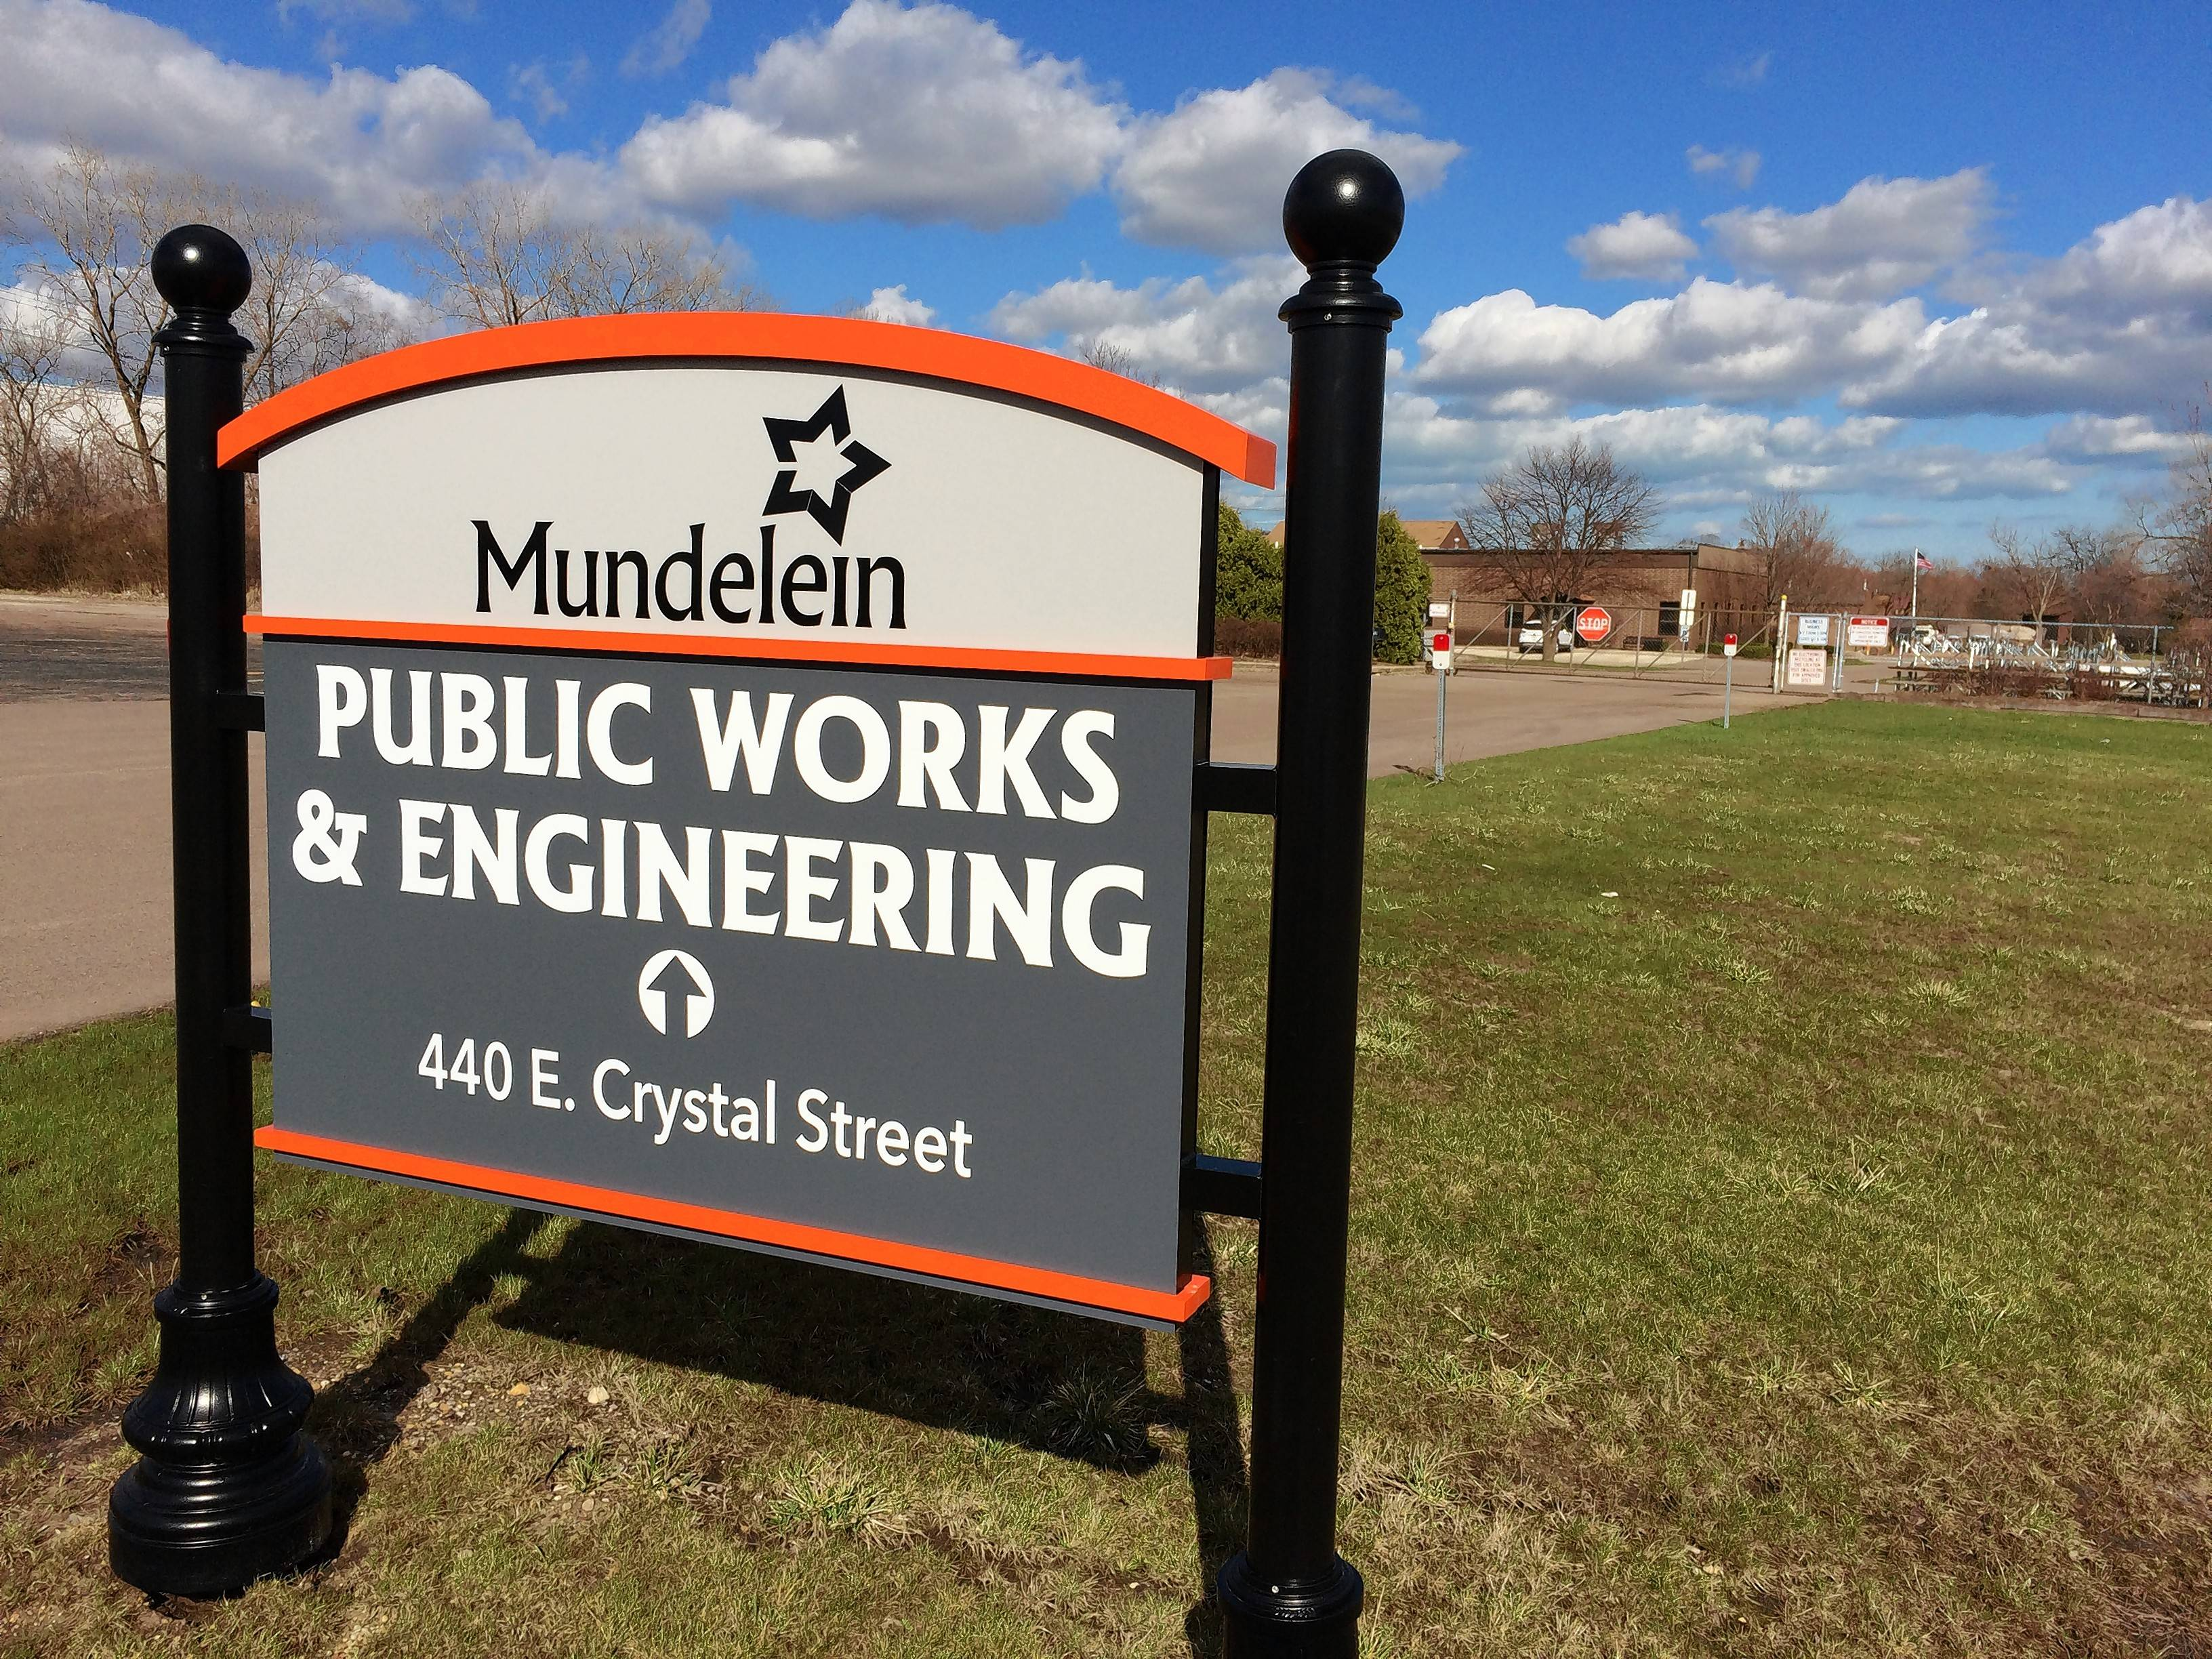 Mundelein public works employees get raises in new 5-year contract